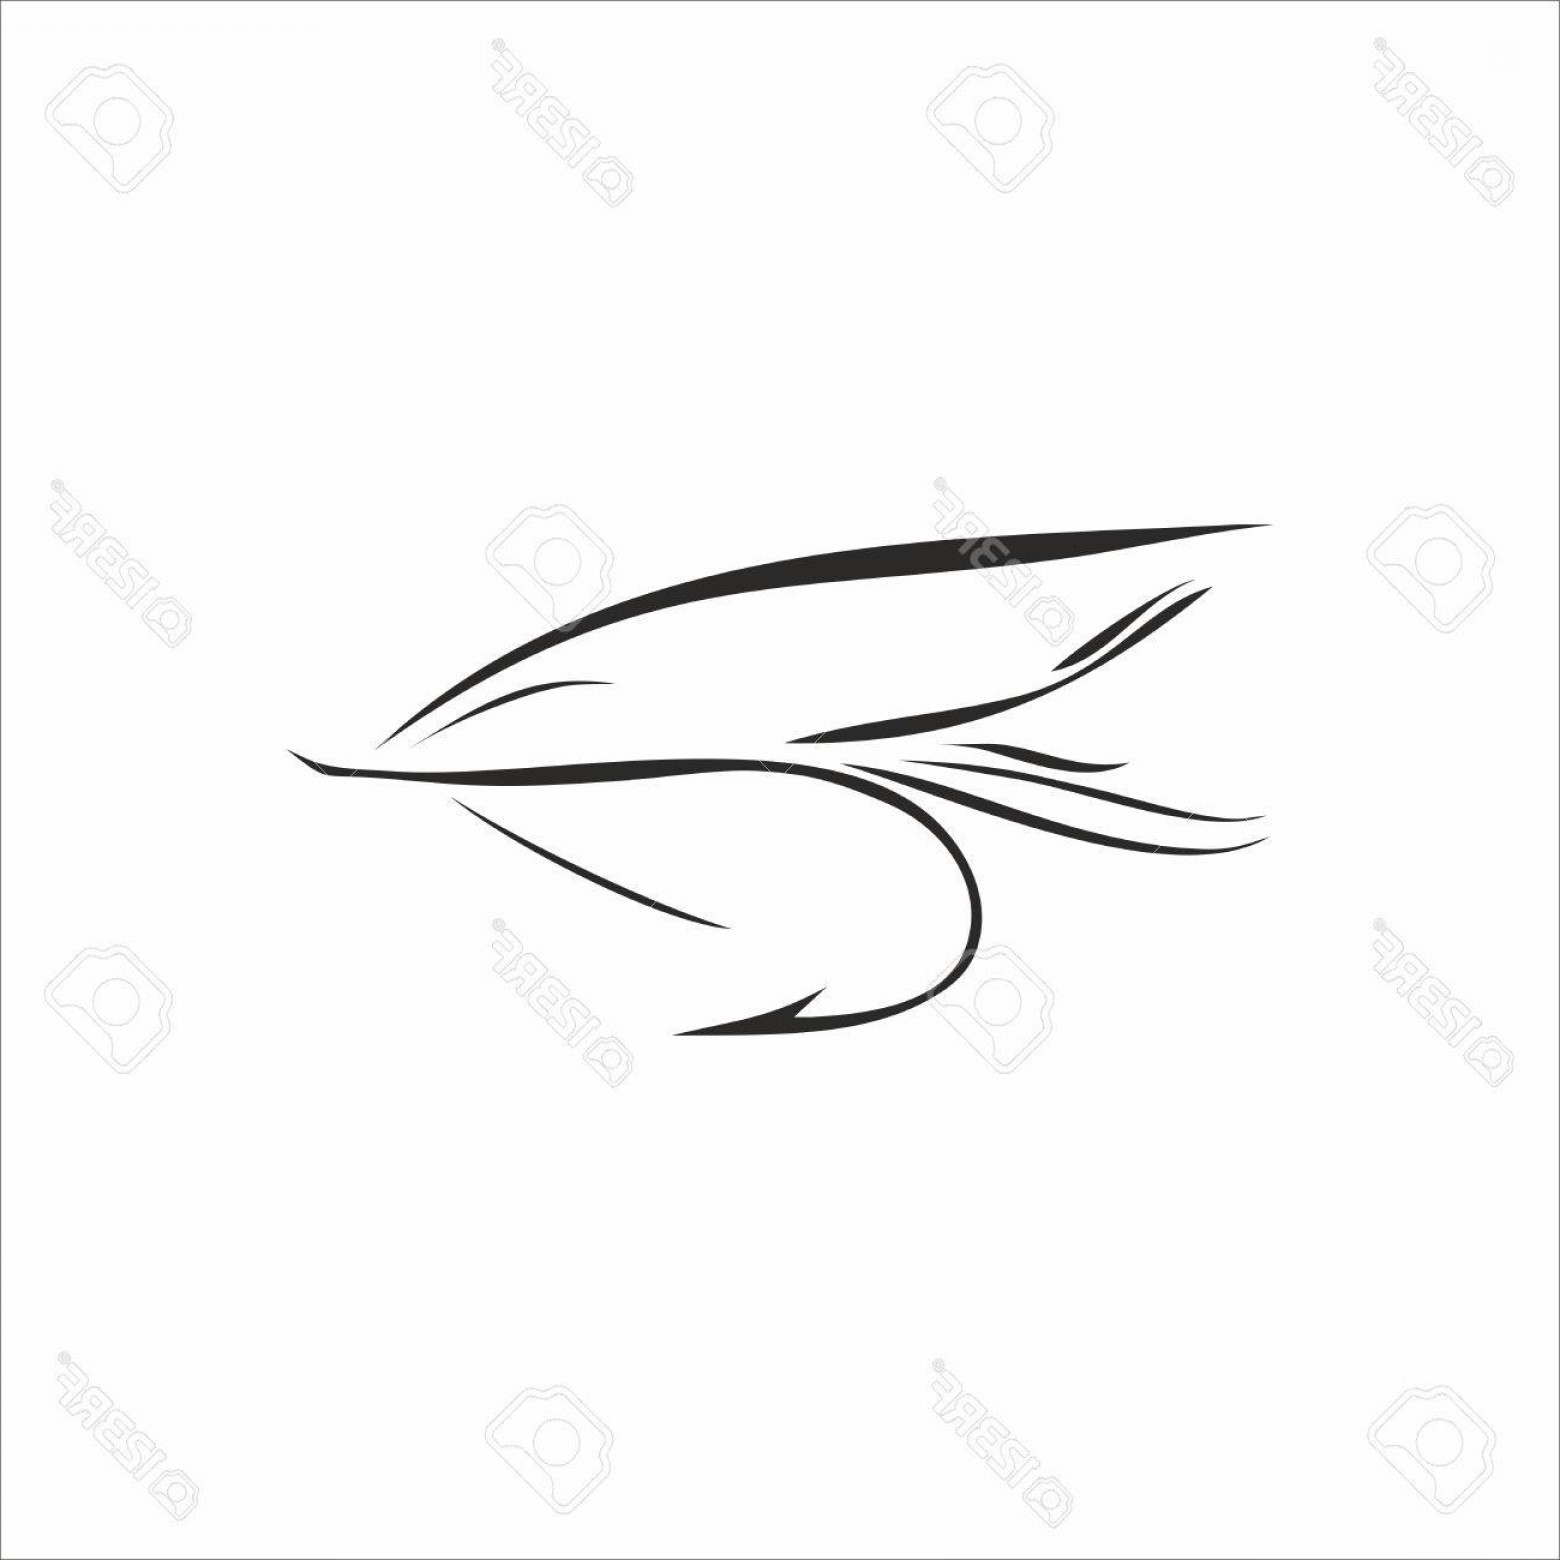 Detailed Vector Art Fly Fisherman: Photoabstract Fly Fishing In Black Color On White Background